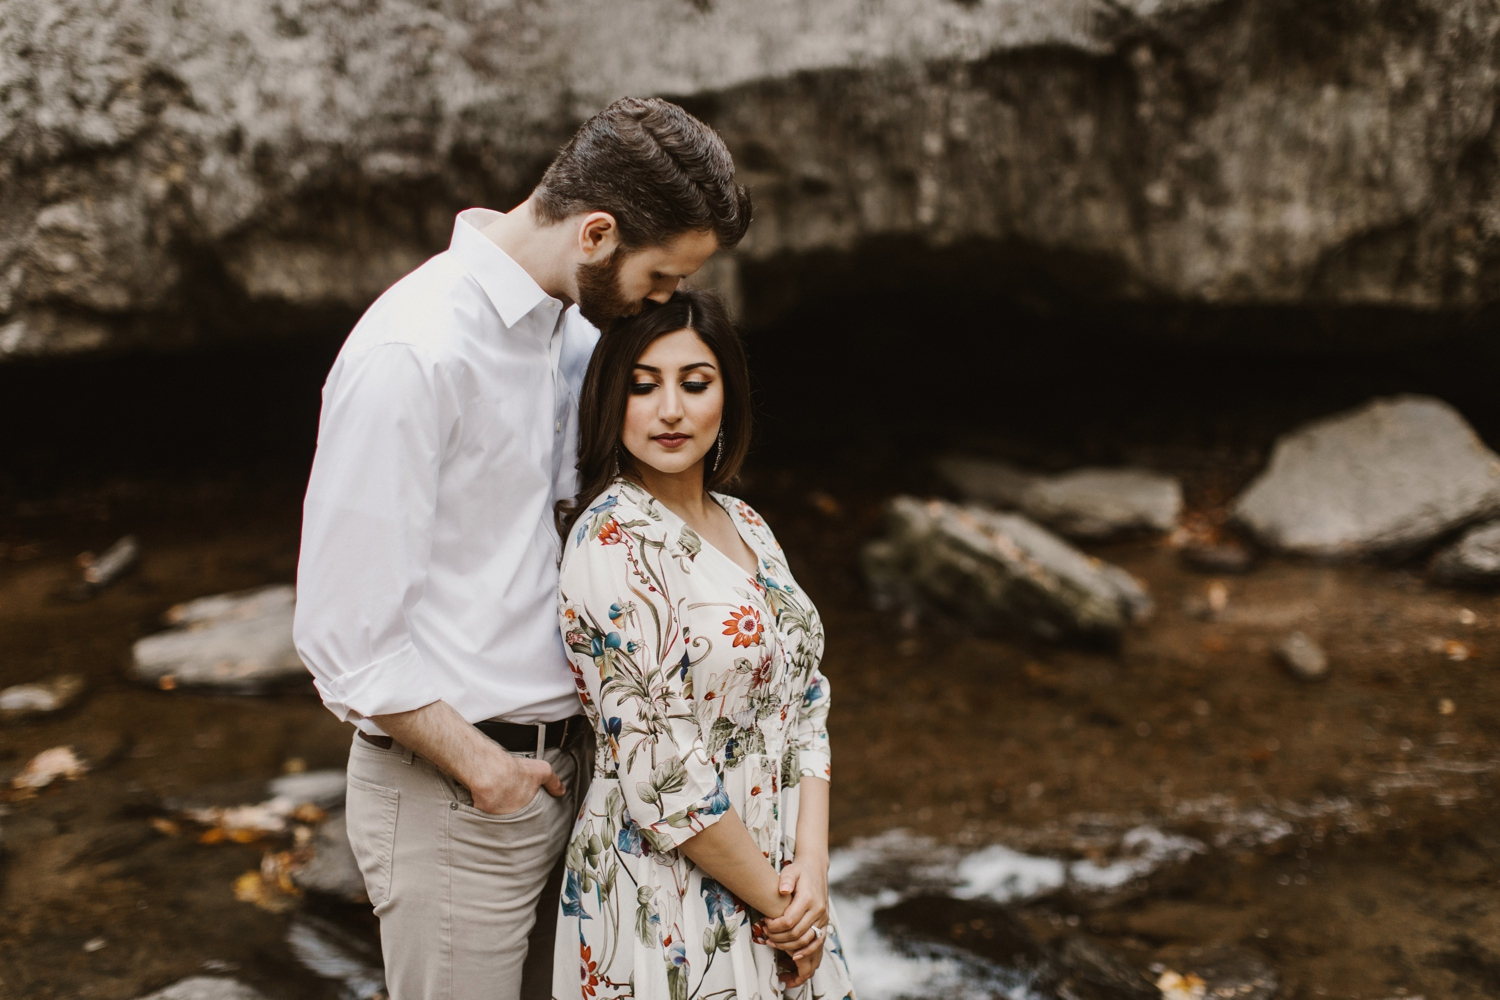 sundas-and-scotts-engagement-63_baltimore-washington-d-c-waterfall-kilgore-engagement-session-maxi-dress-earthy-maryland-wedding-photographer-kate-ann-photography-phot